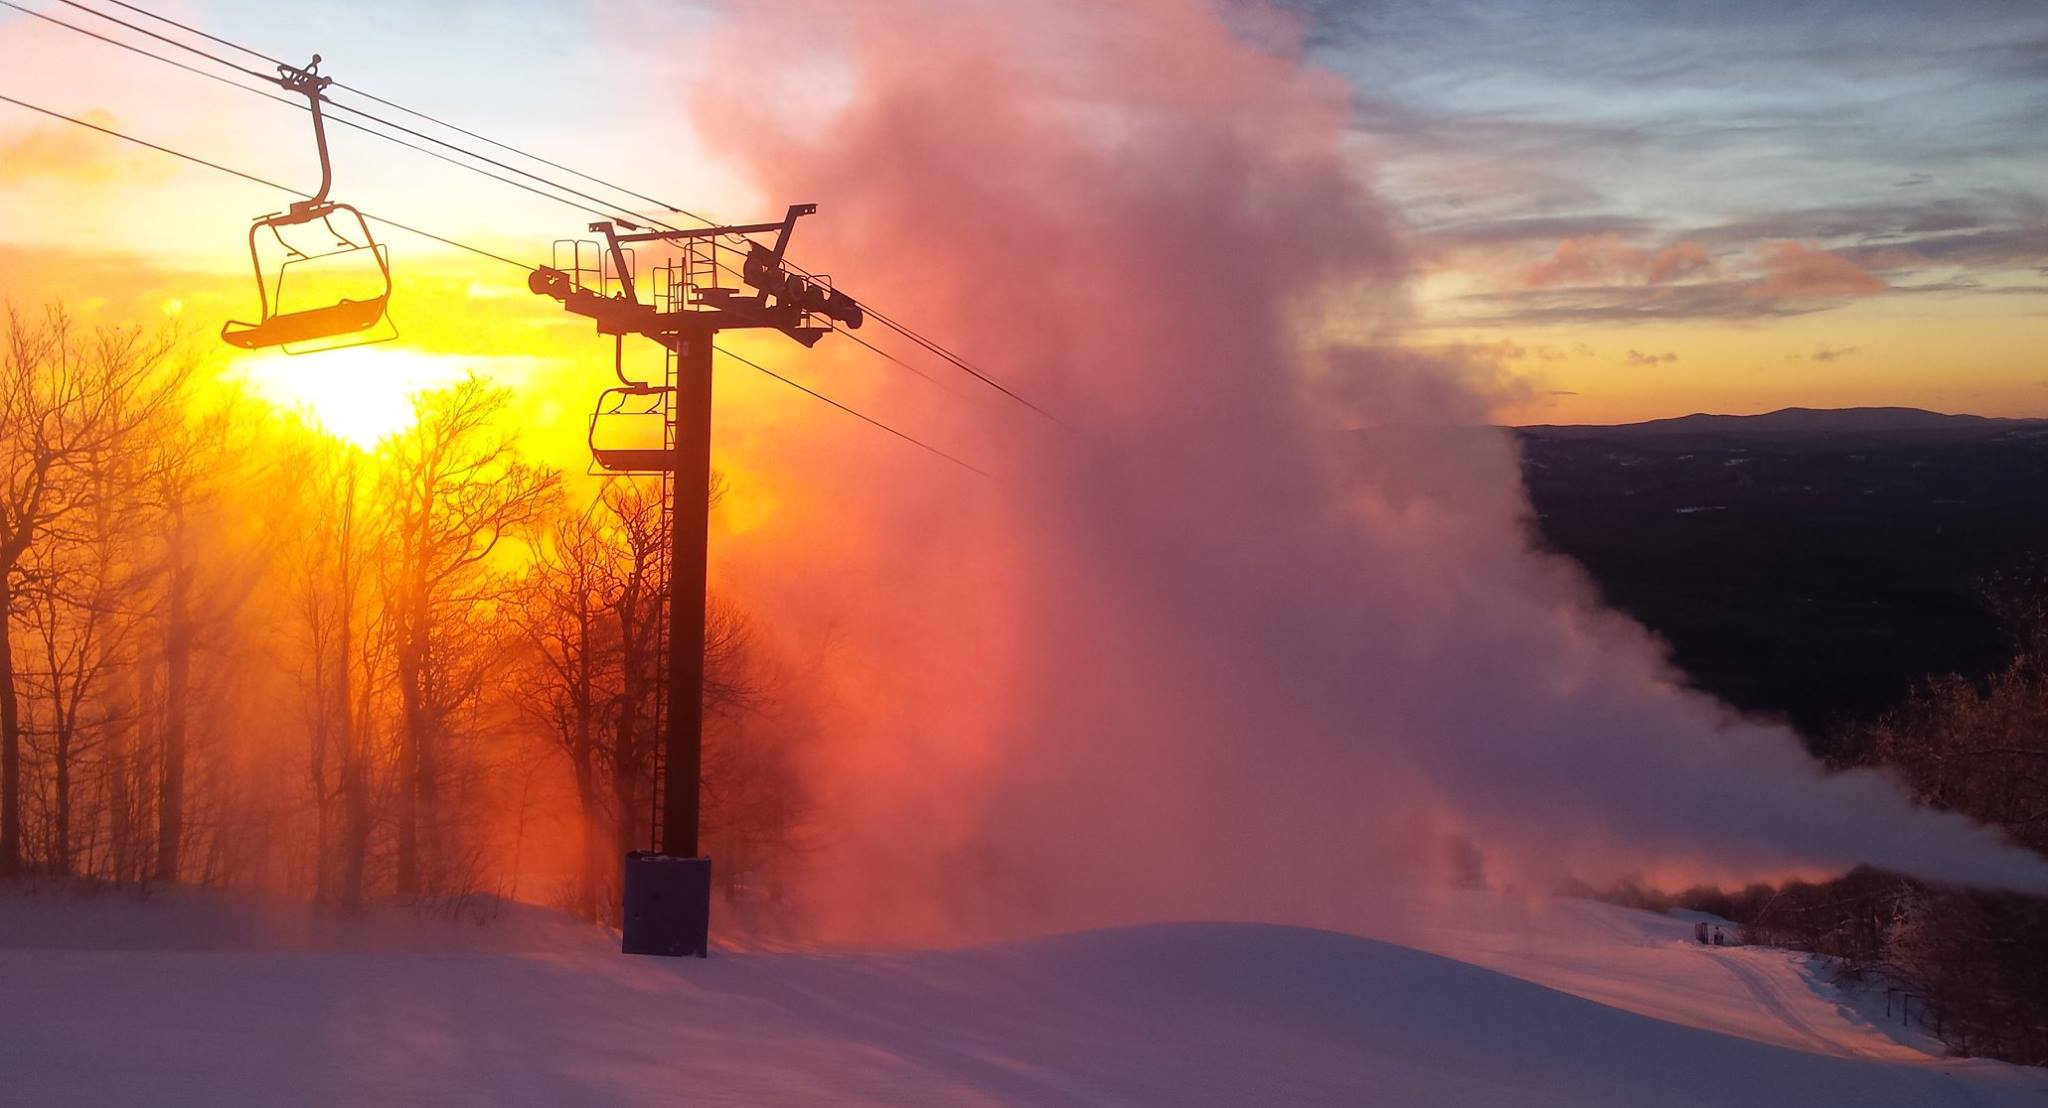 Bromley snowmakers hope to get back to this by Thursday. (file photo: Bromley Mountain)